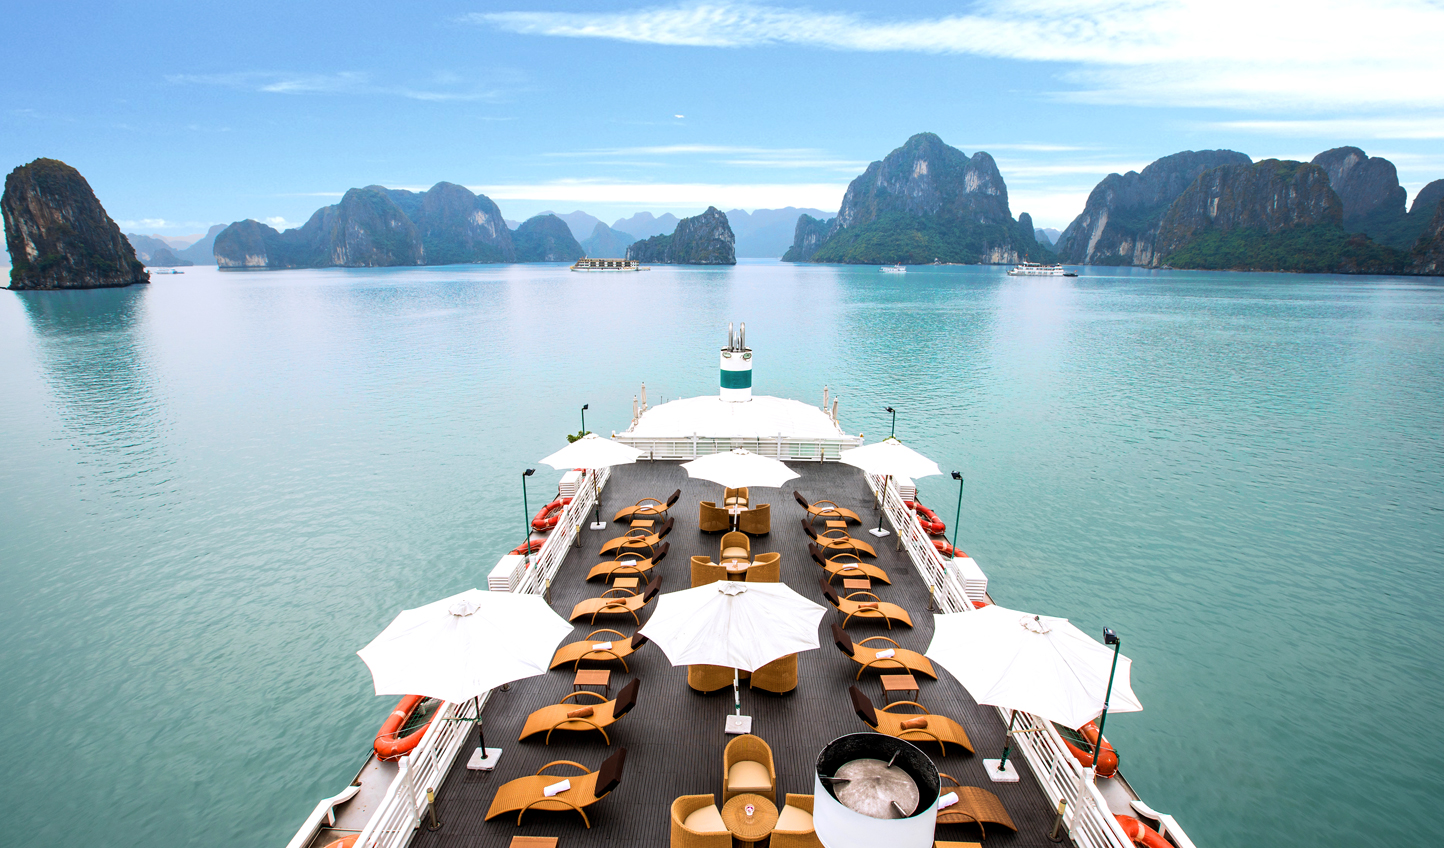 Marvel at the beautiful scenery of Halong Bay from the comfort of the sundeck